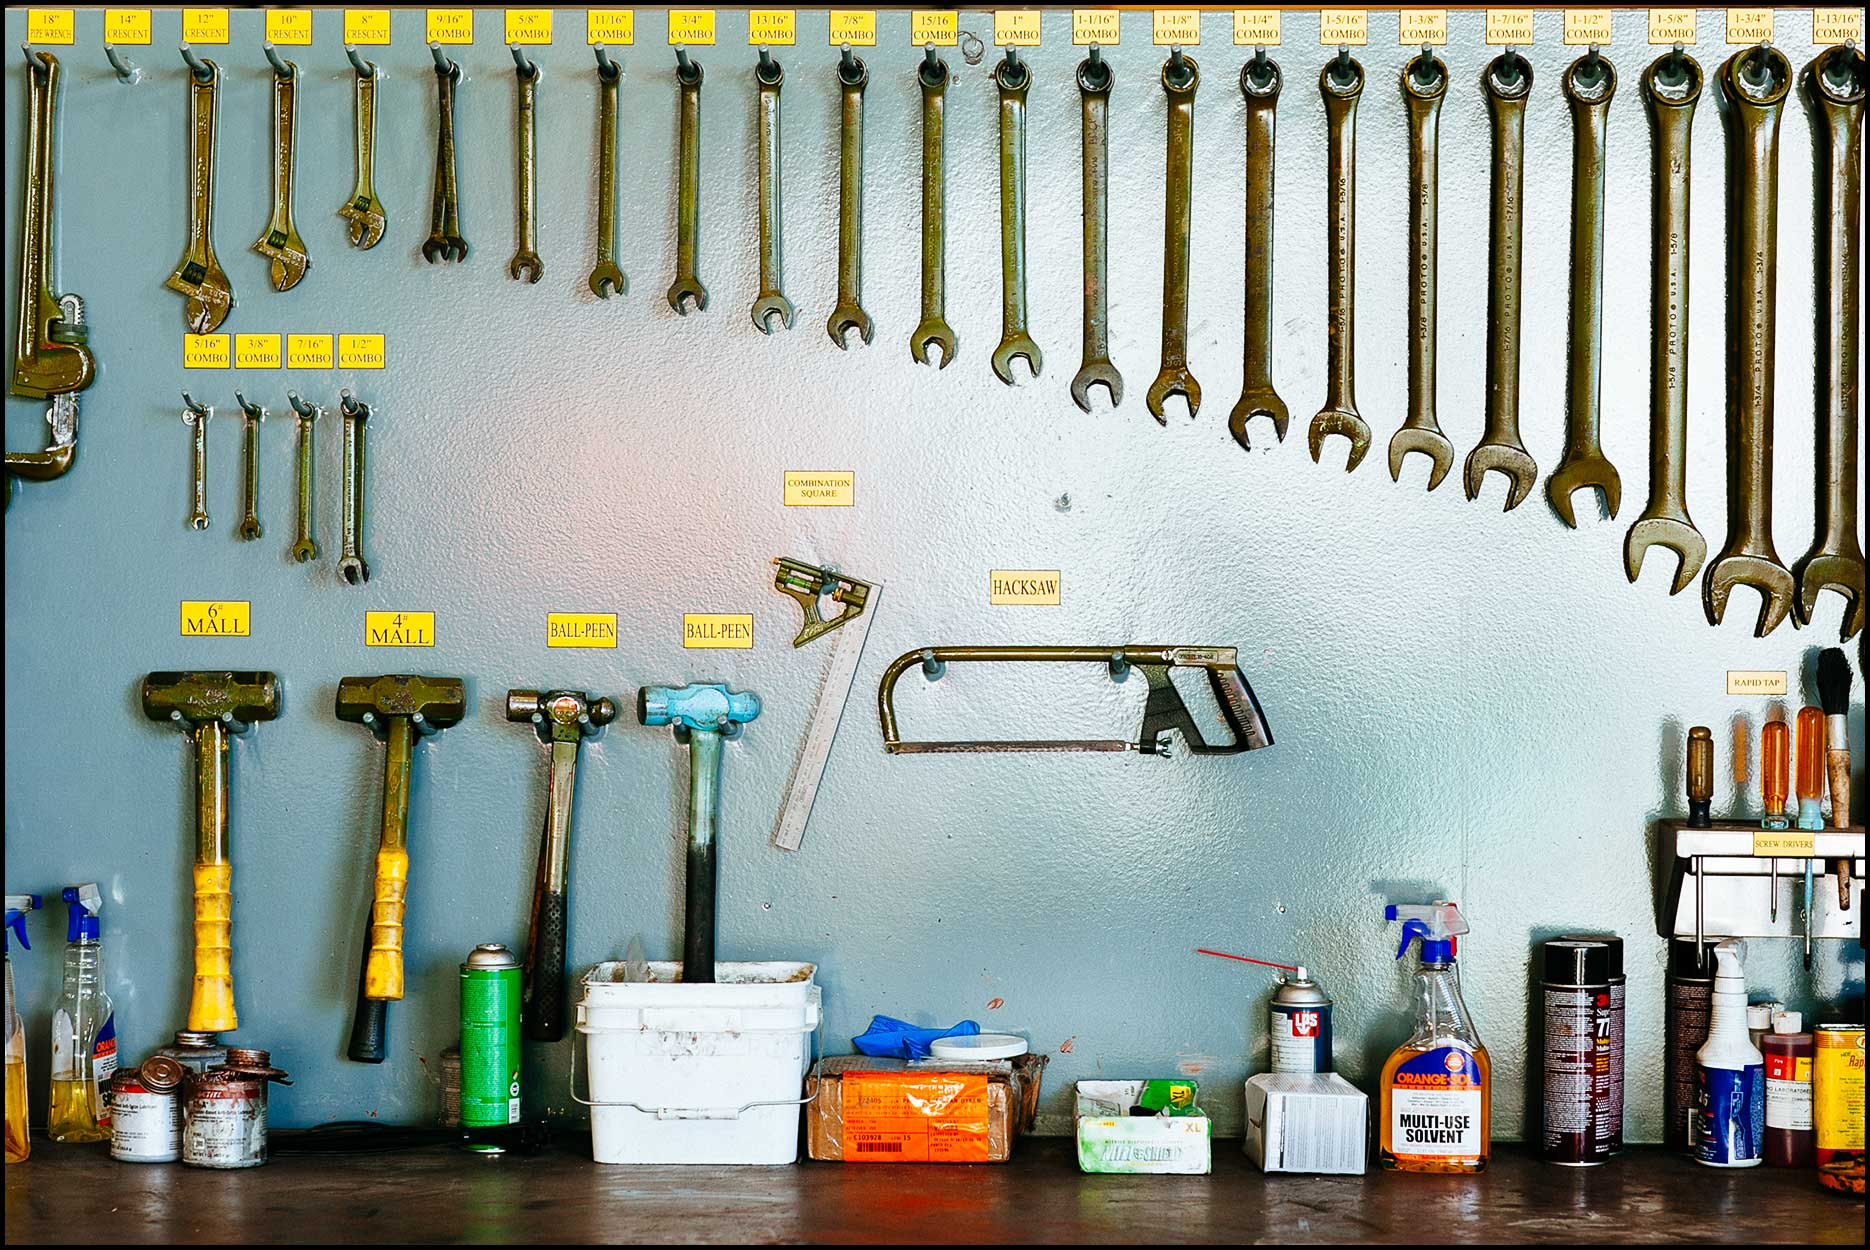 A shop tool bench has mallets, wrenches, saws, and other tools organized and labeled.